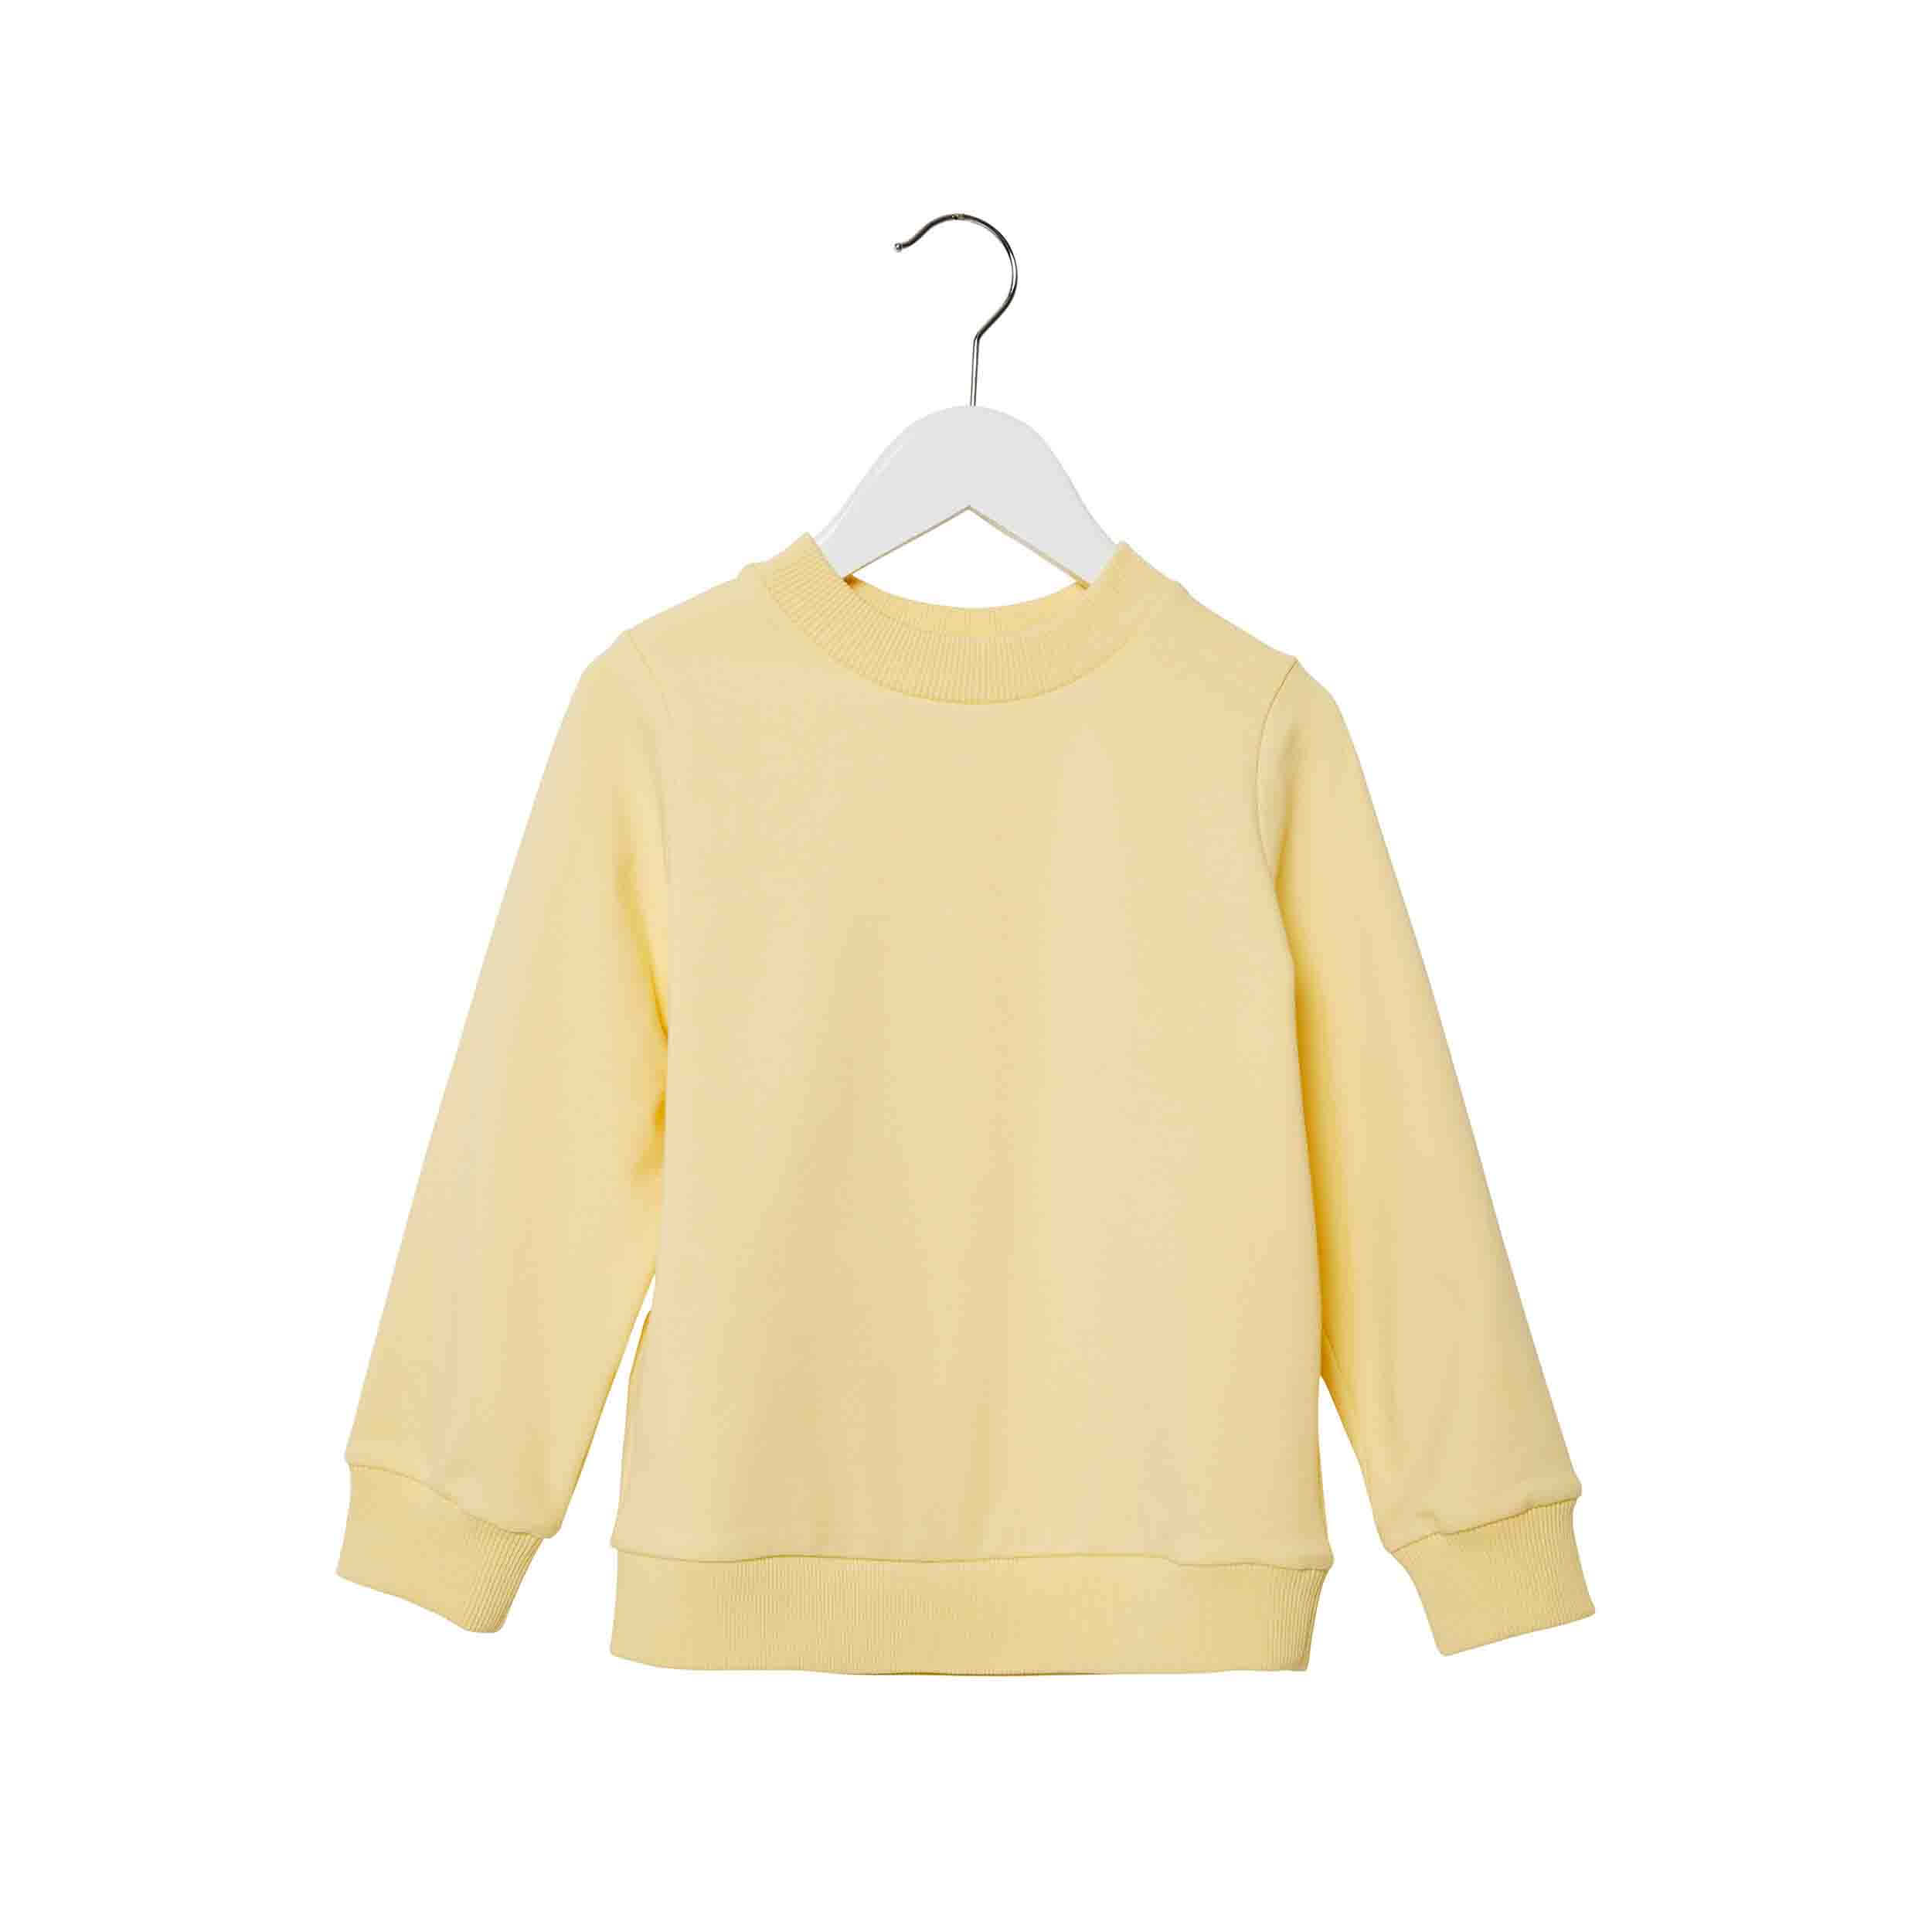 pepeandnika presents wawa copenhagen elegant kidsbrand summerclothes yellow Sweatshirt for girls and boys basic organic